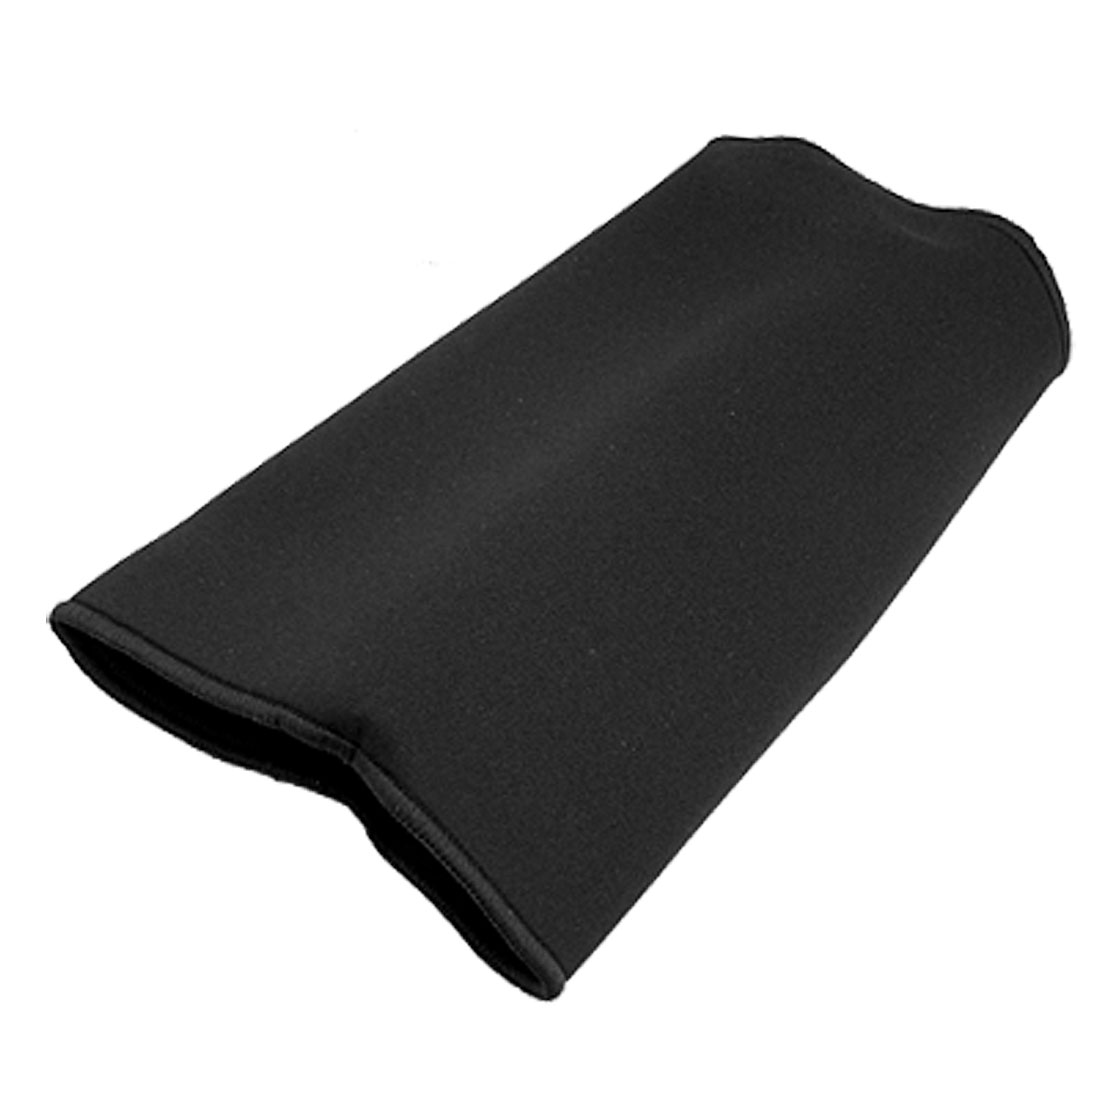 Sports Neoprene Elastic Adjustable Thigh Support Wrap Brace Band Black M